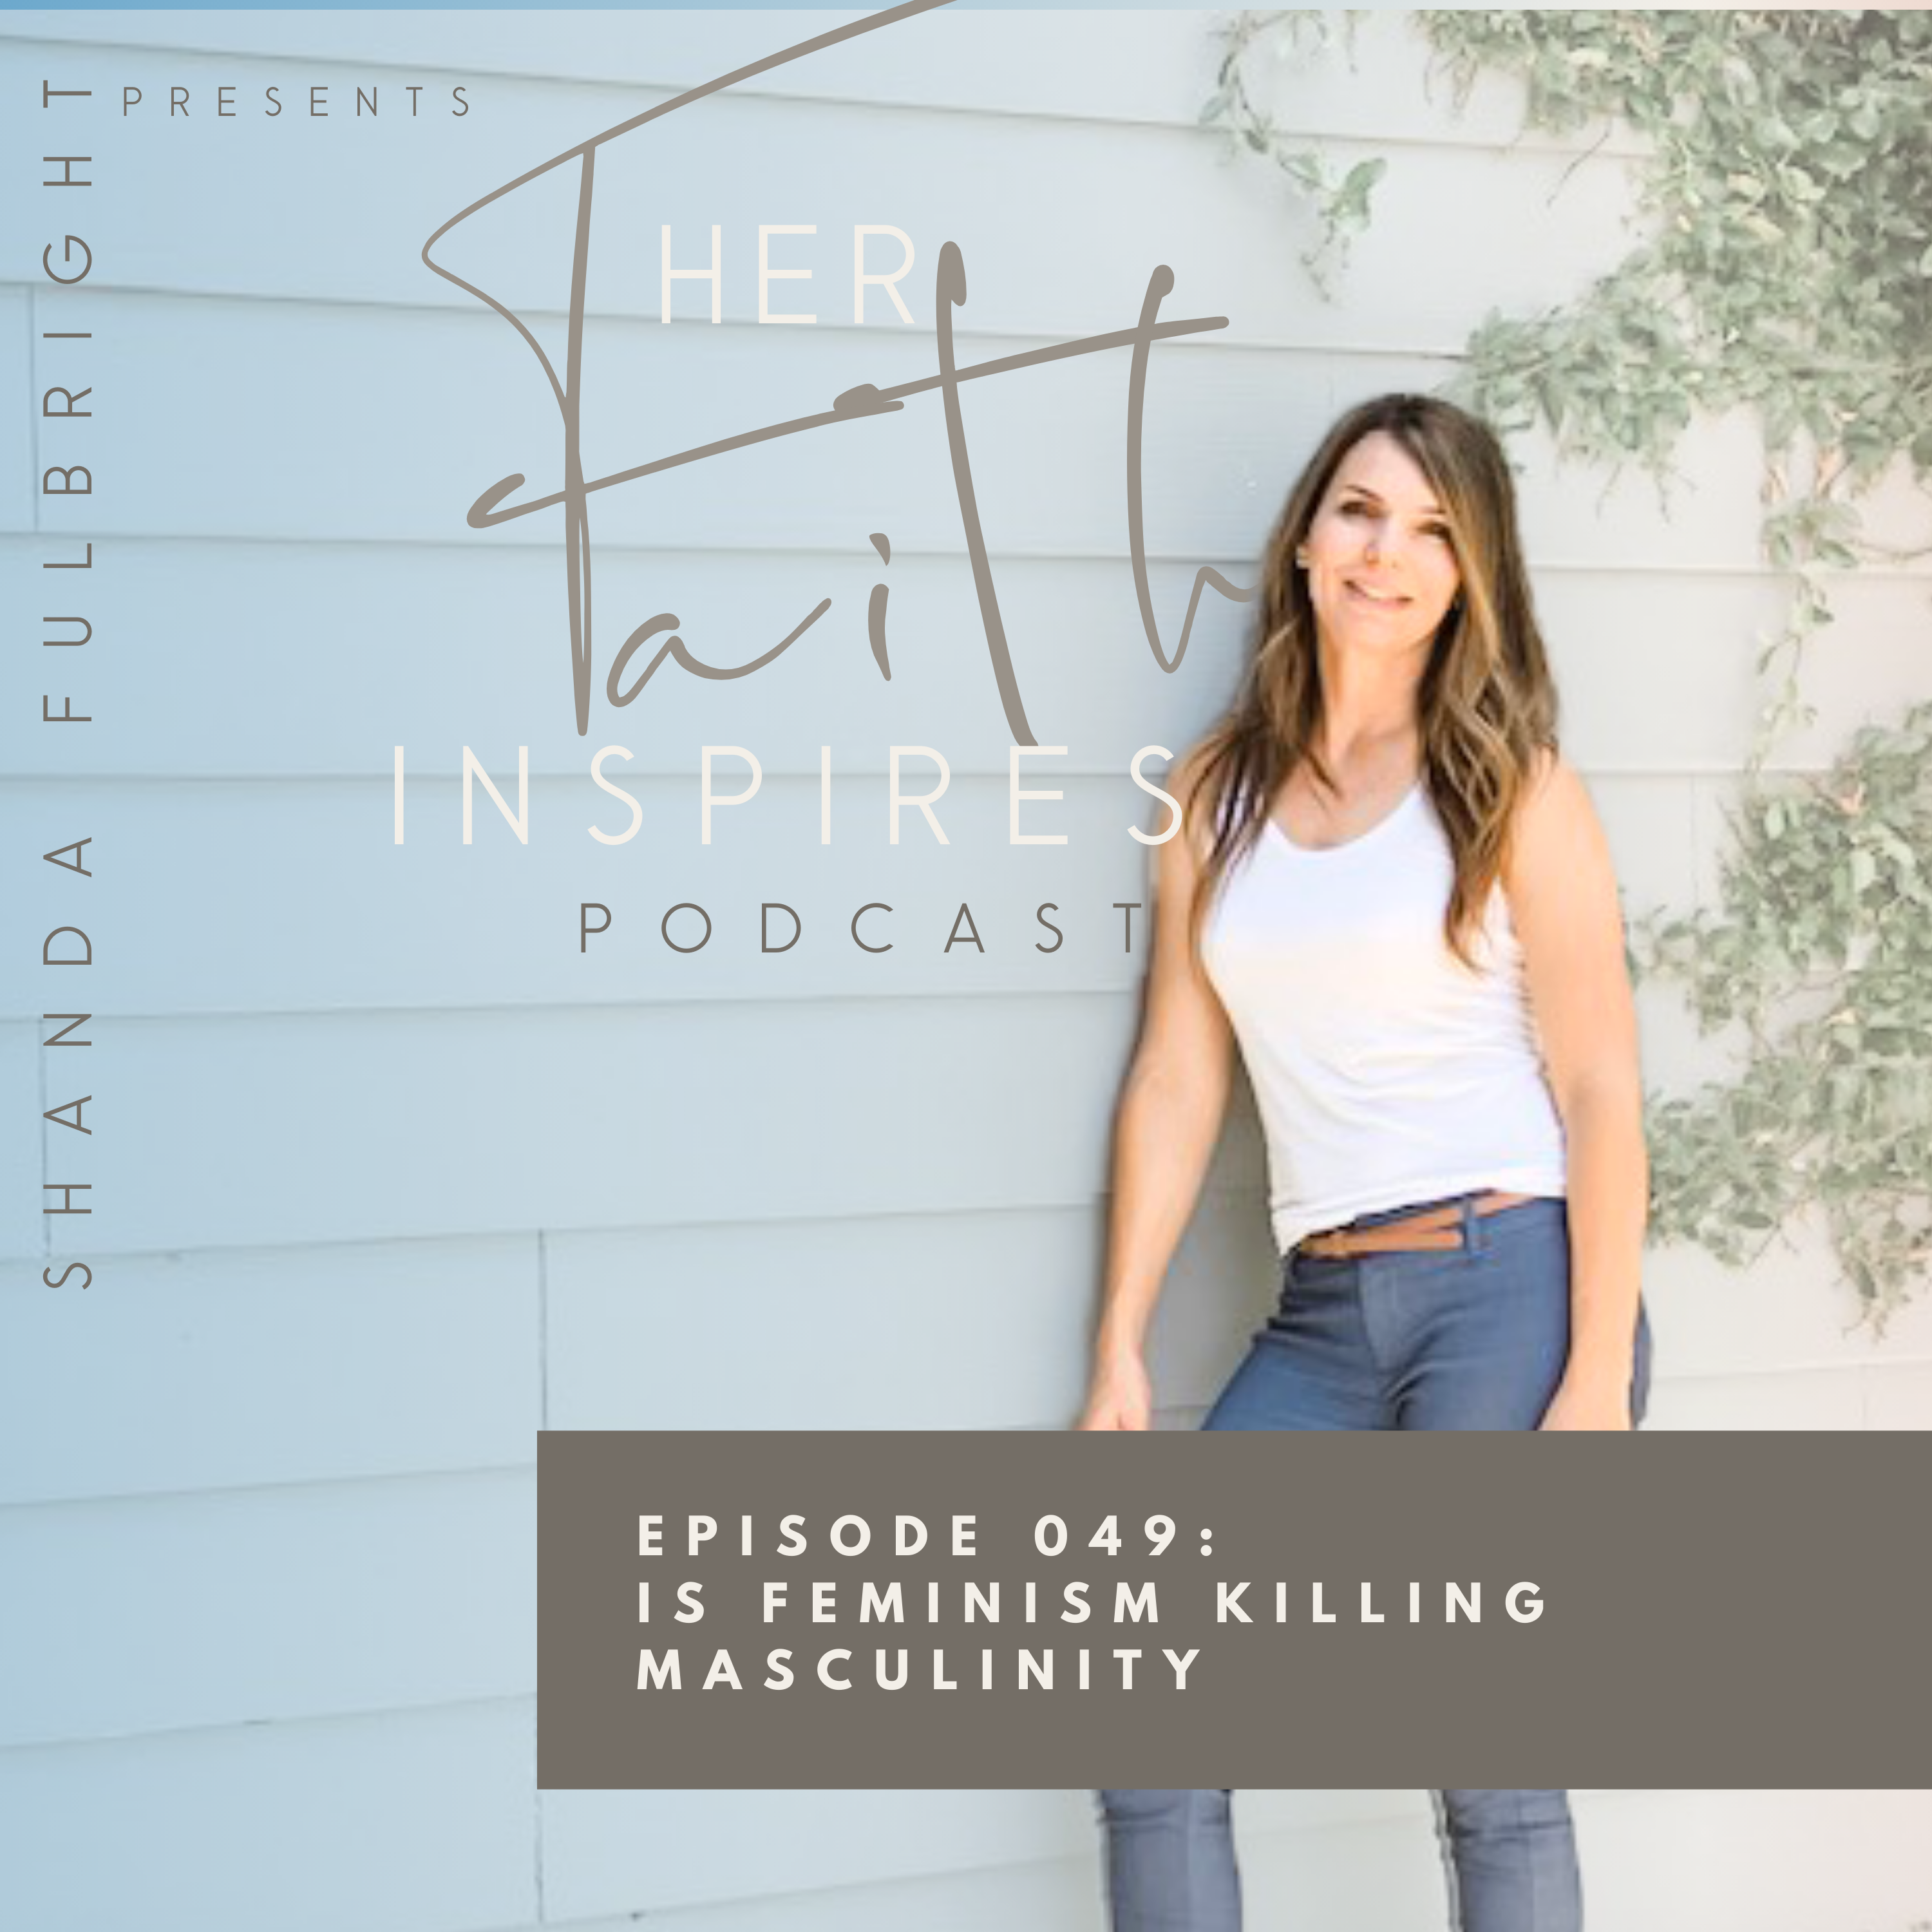 SF Podcast Episode 49 - HER FAITH INSPIRES 049 : Is feminism killing masculinty